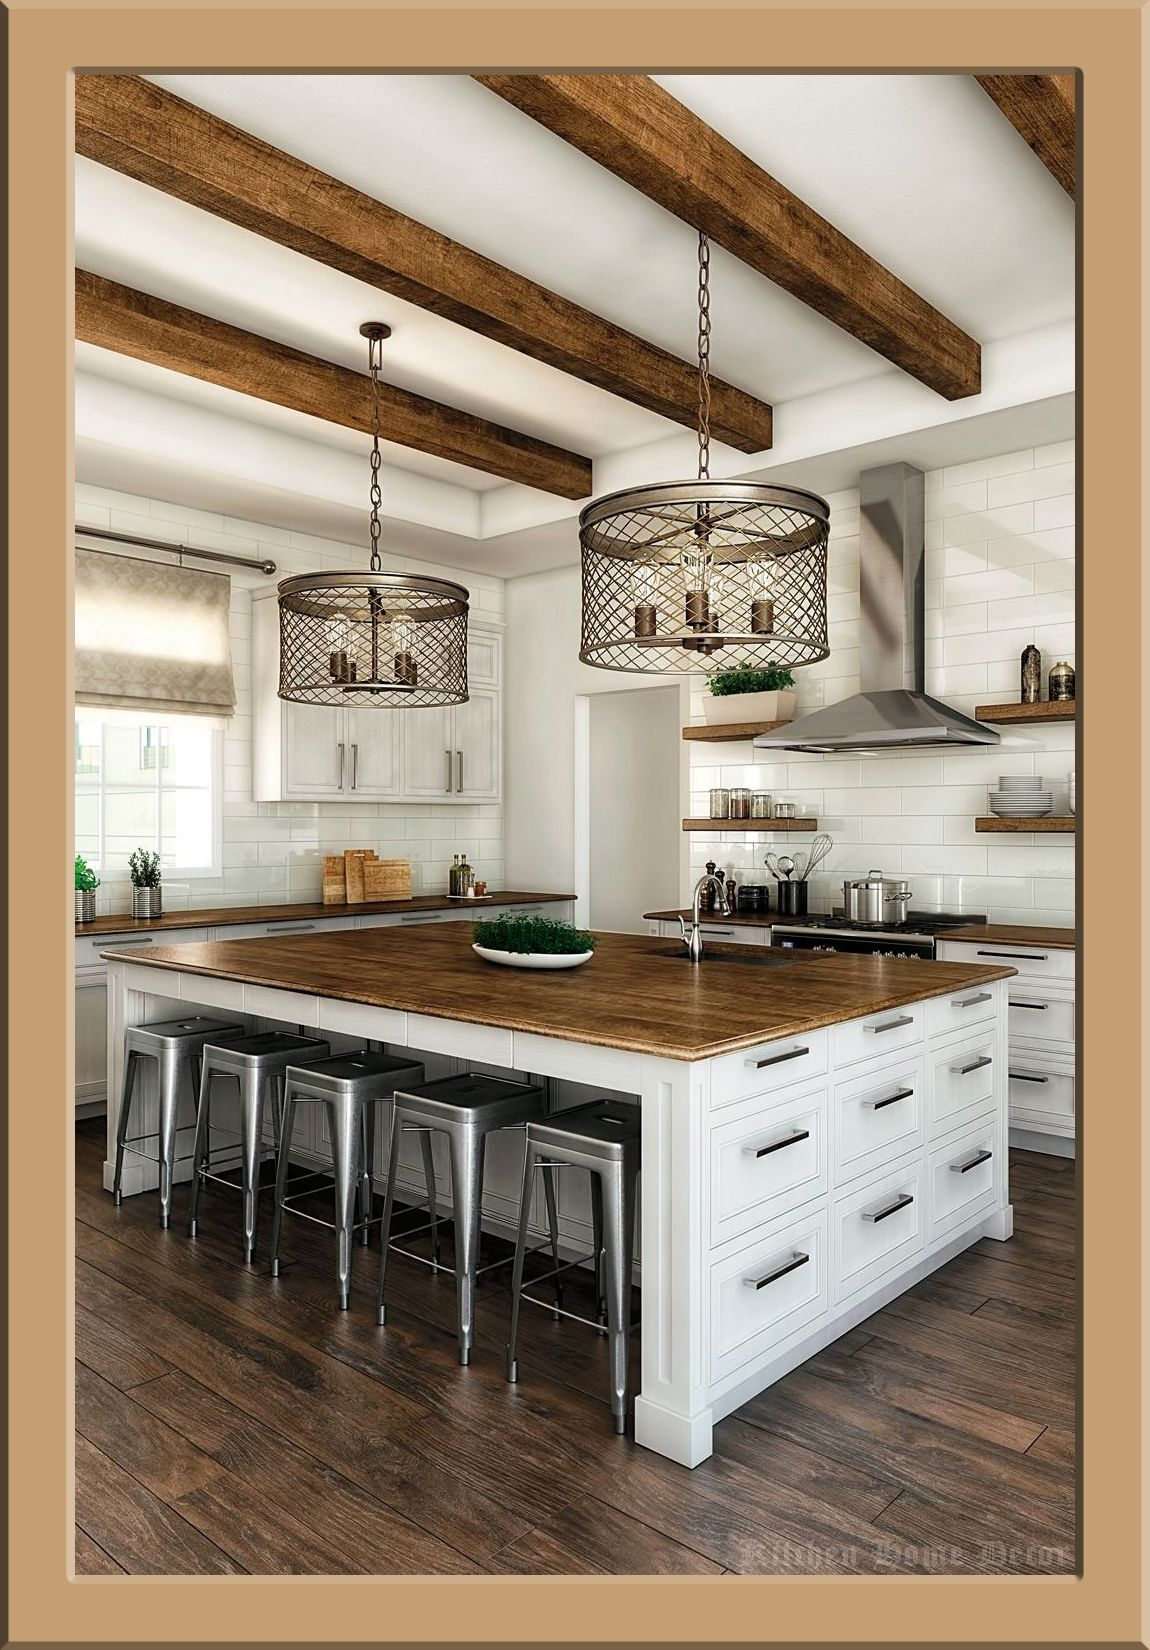 Kitchen Decor And Love Have 4 Things In Common